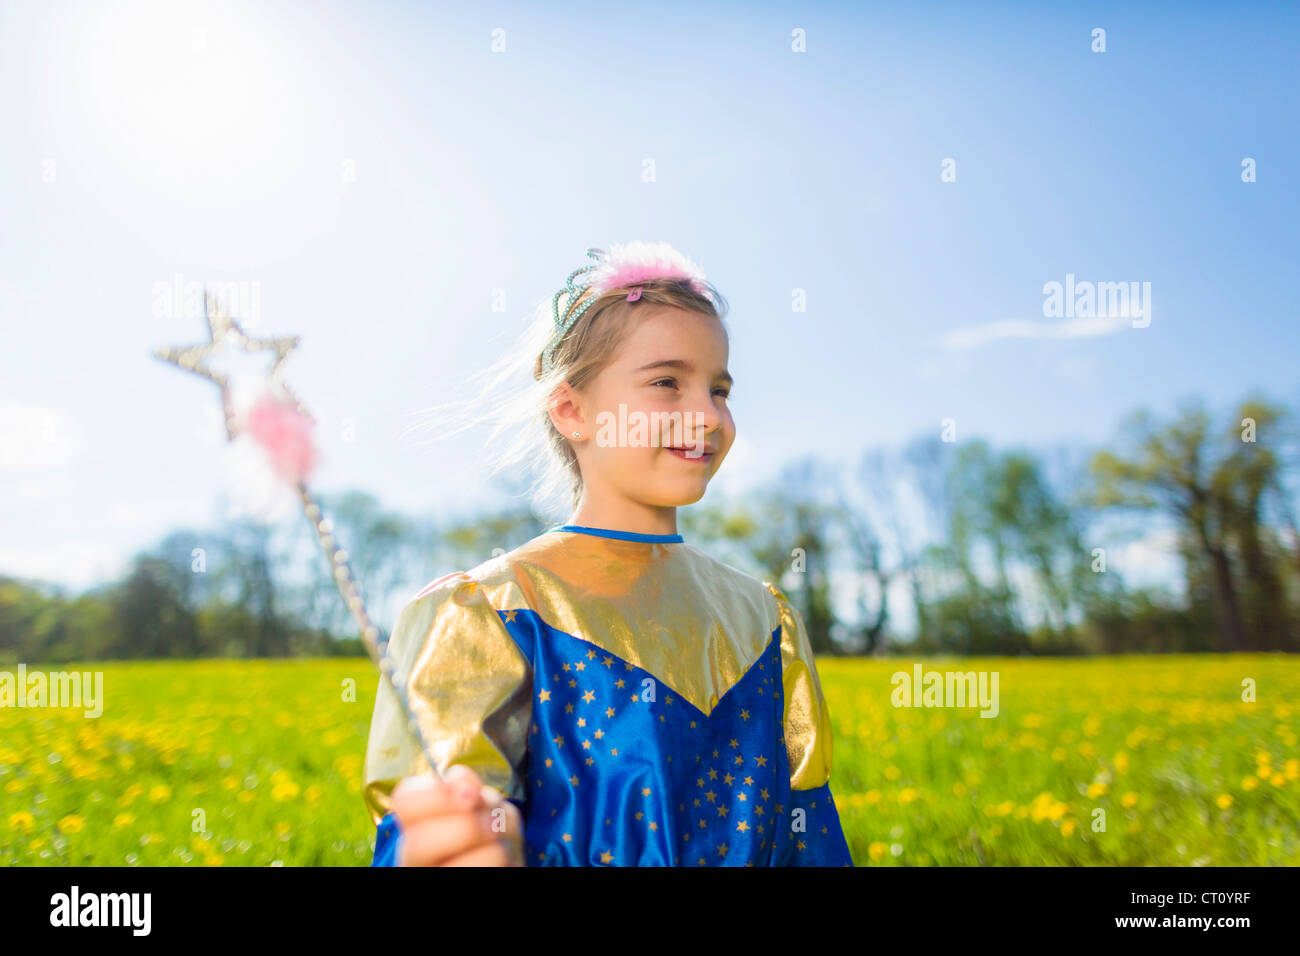 Girl wearing fairy costume outdoors - Stock Image